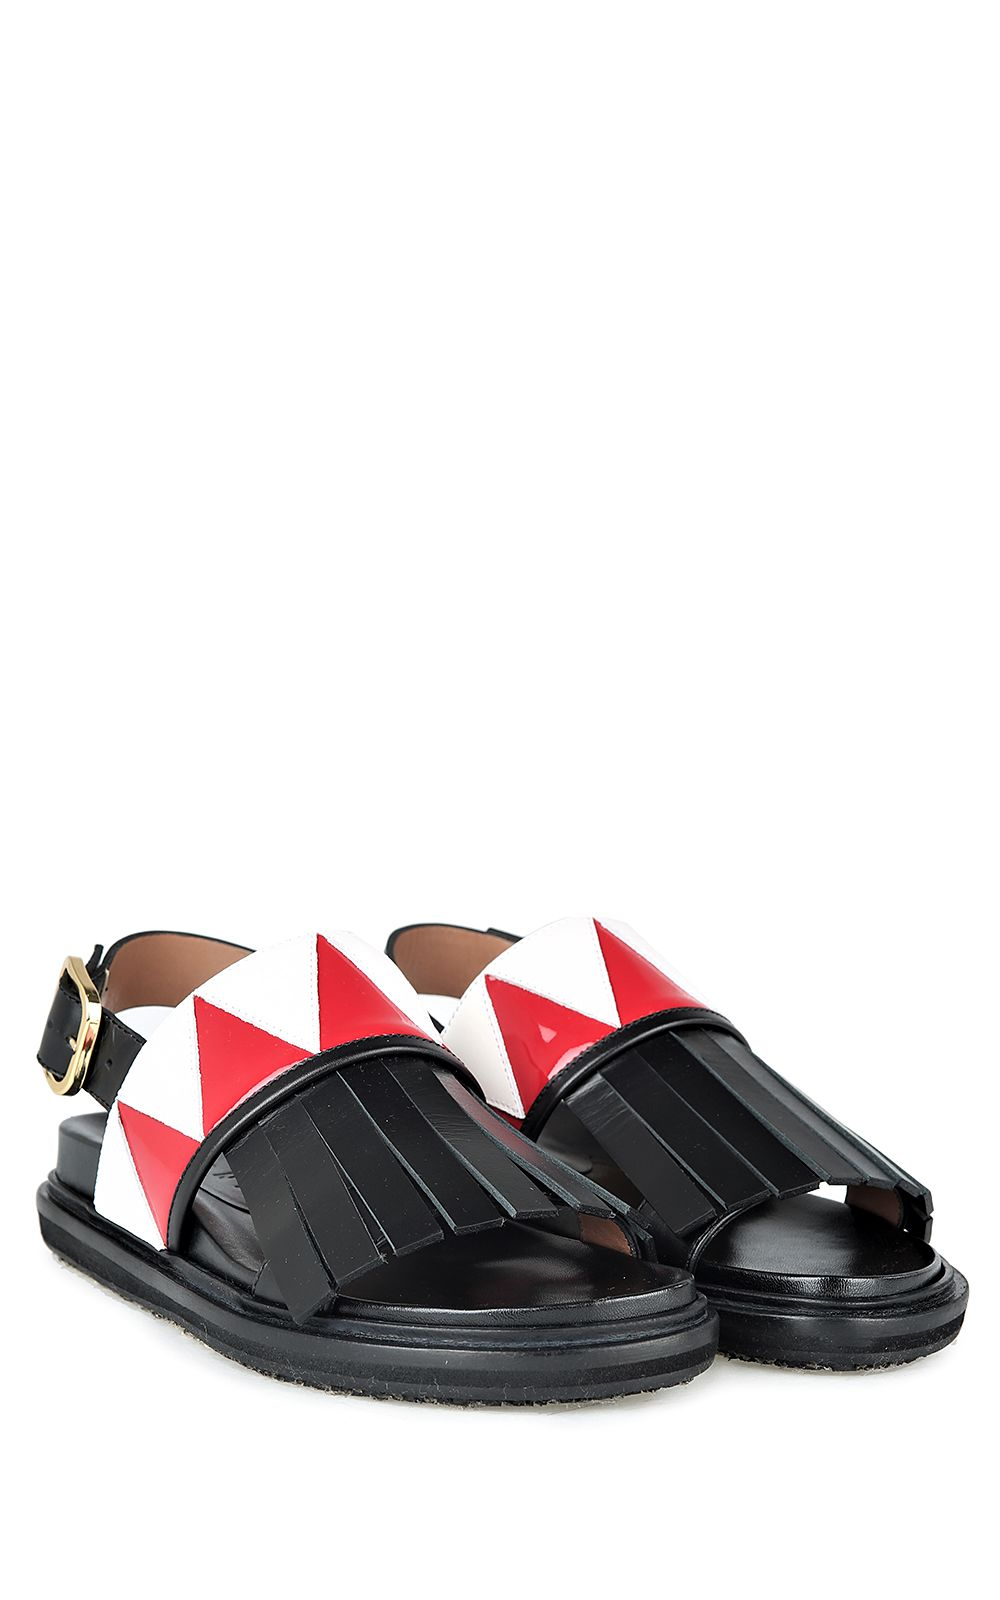 Marni Fringed Bi-color Leather Fussbett